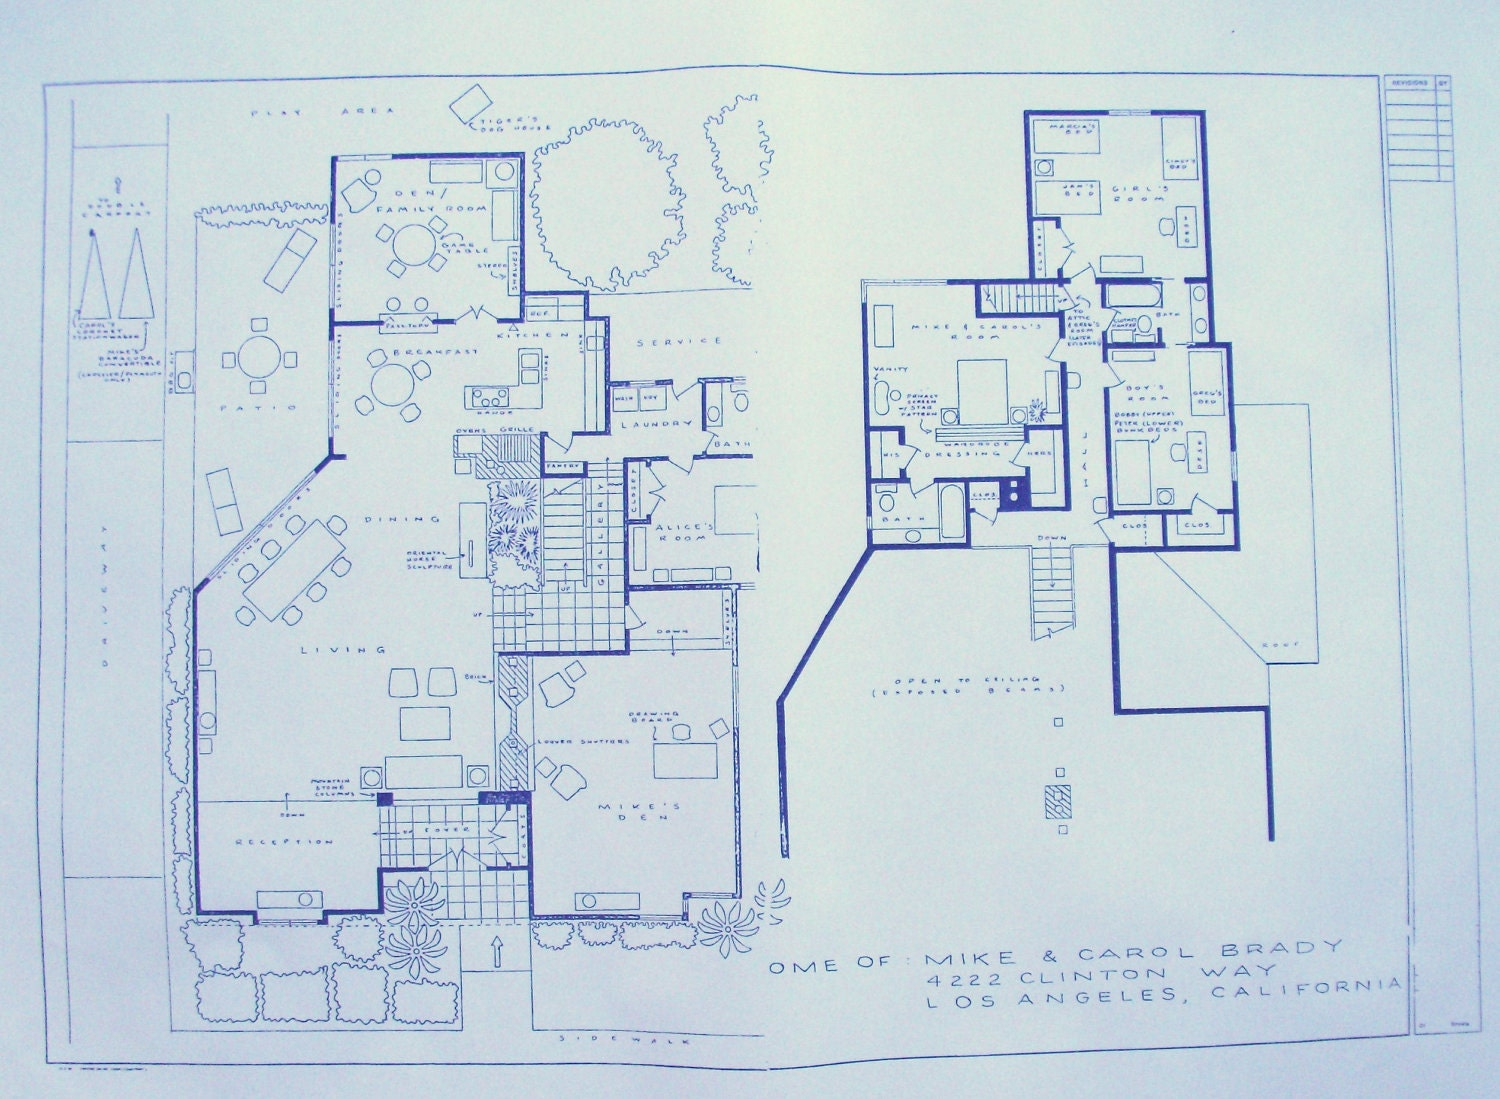 brady bunch house floor plan - photo #3